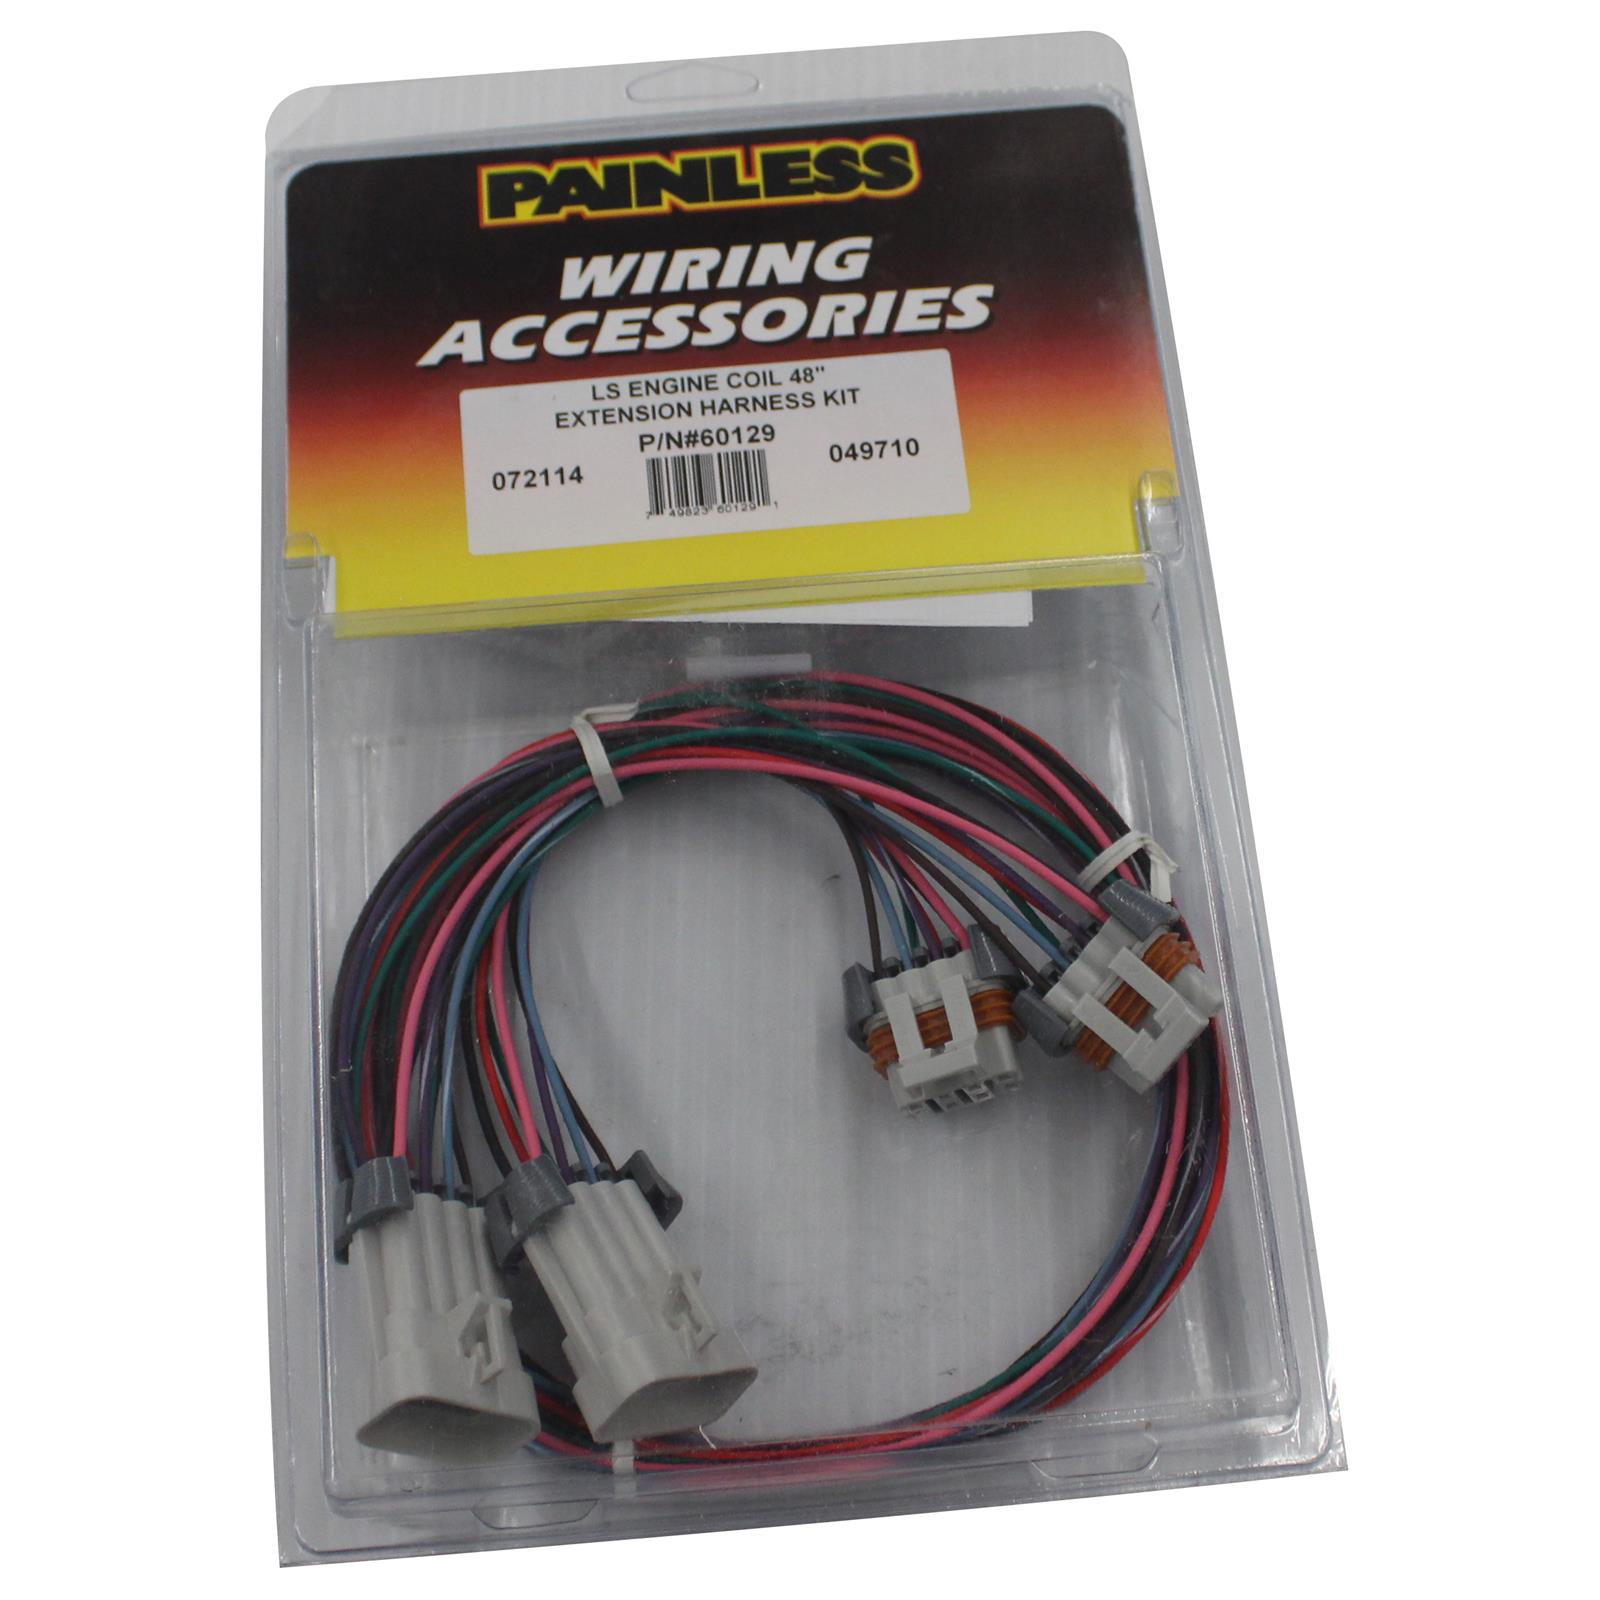 Stupendous Painless Performance Ls Ignition Coil Wiring Harness Extensions Wiring Cloud Oideiuggs Outletorg